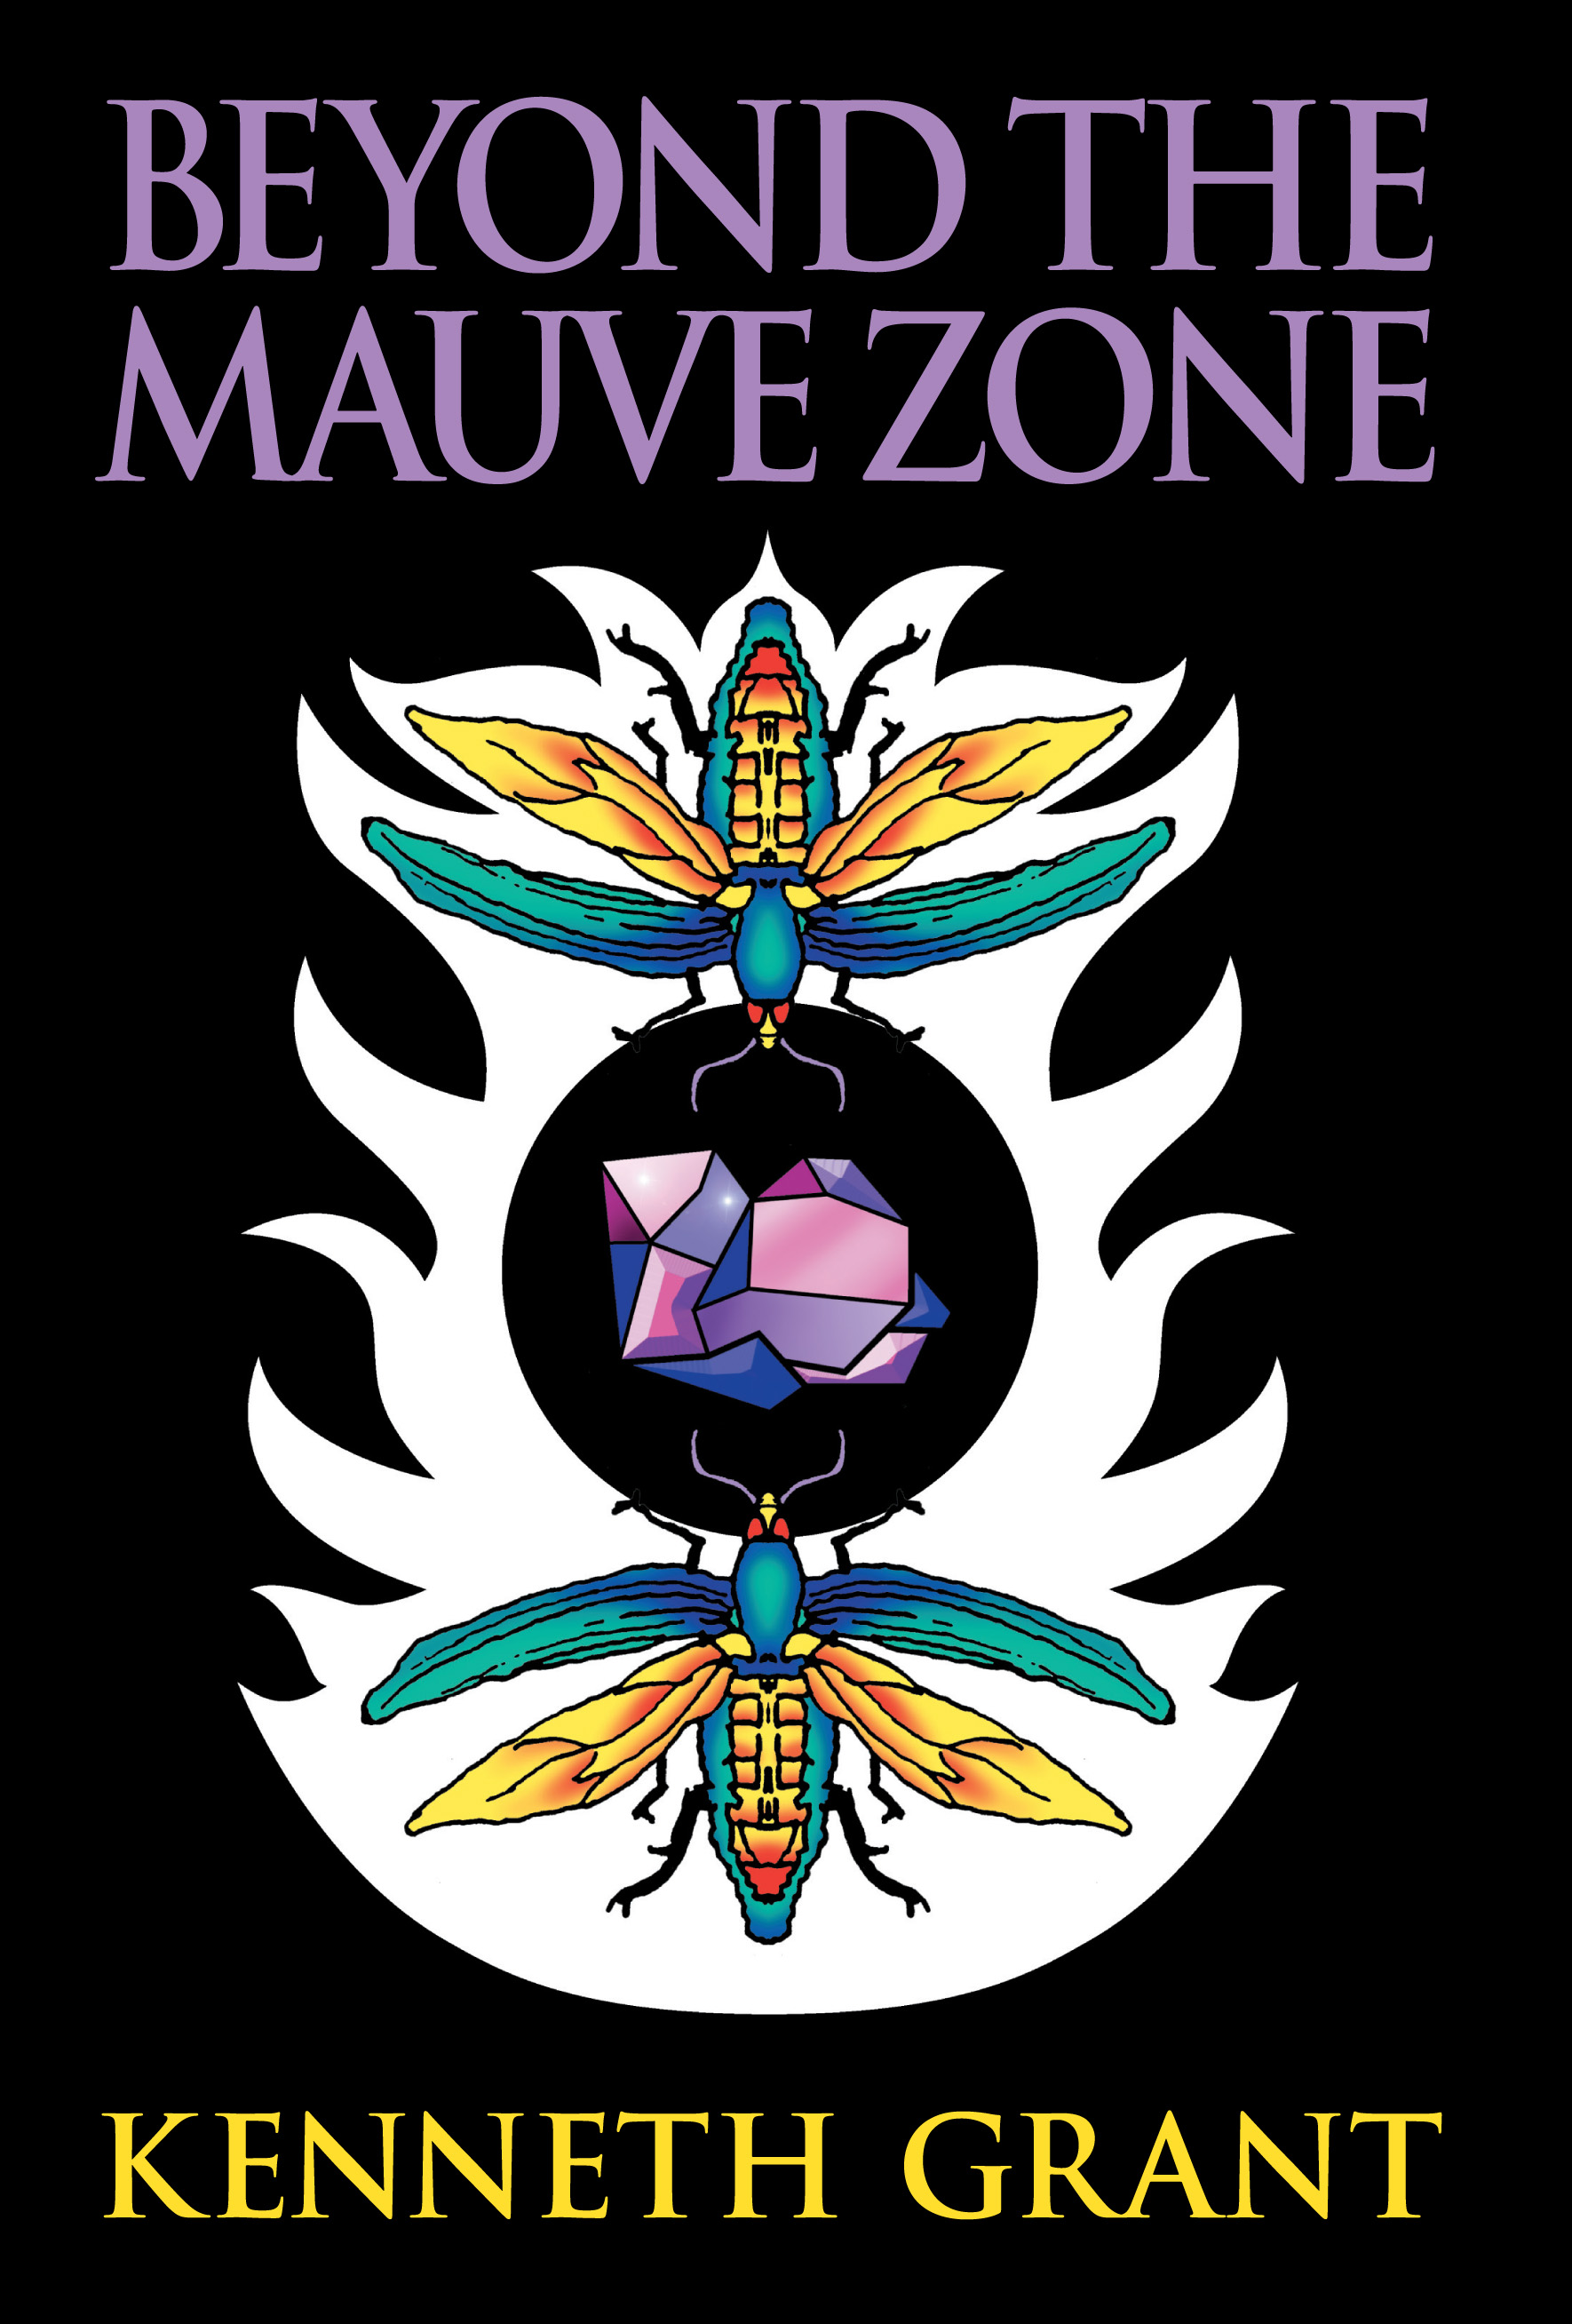 http://www.starfirepublishing.co.uk/images/Mauve_Zone.jpg